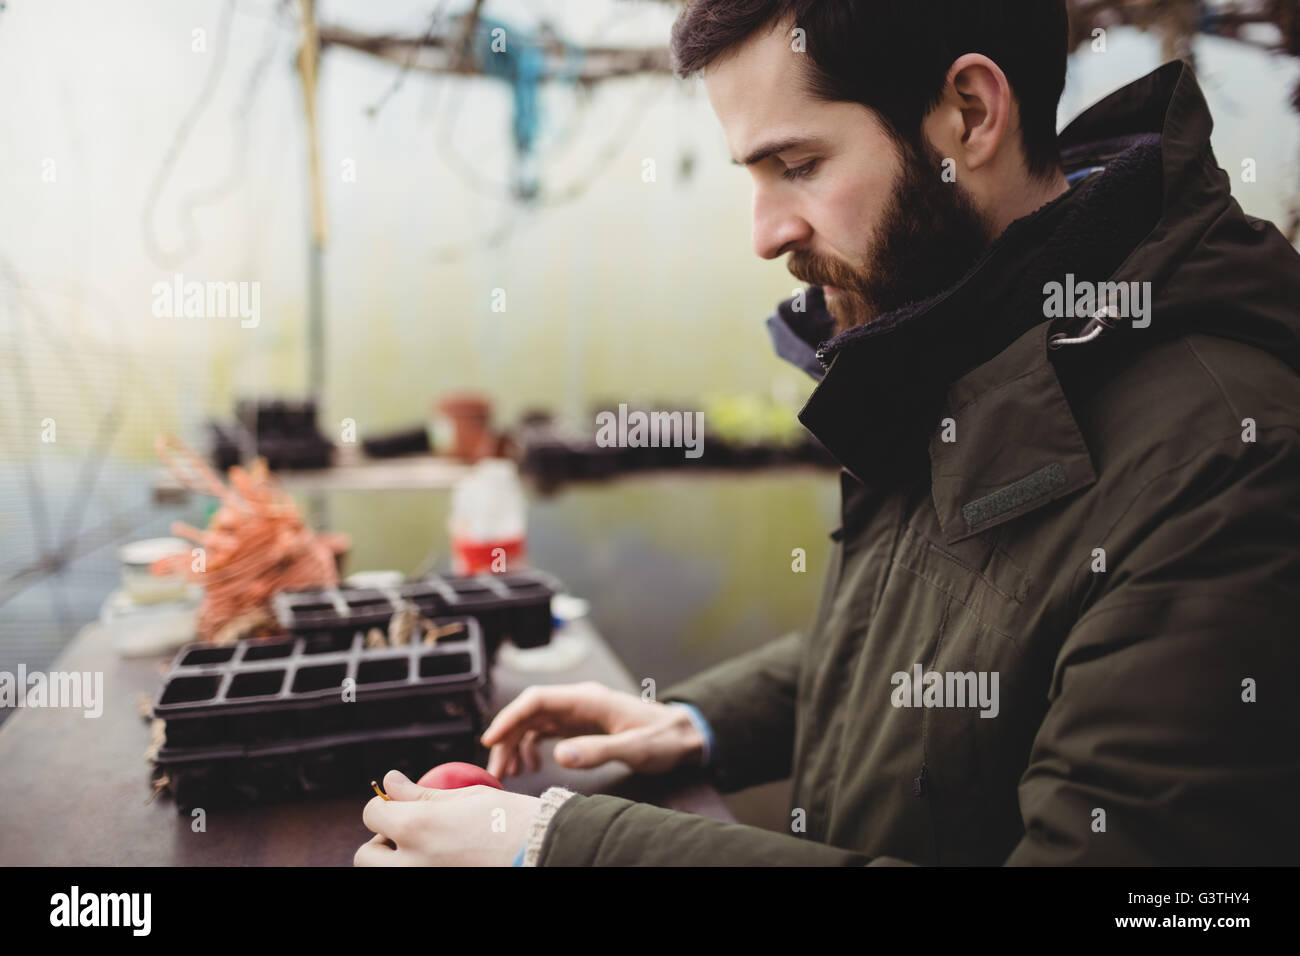 Profile view of hipster man gardening - Stock Image